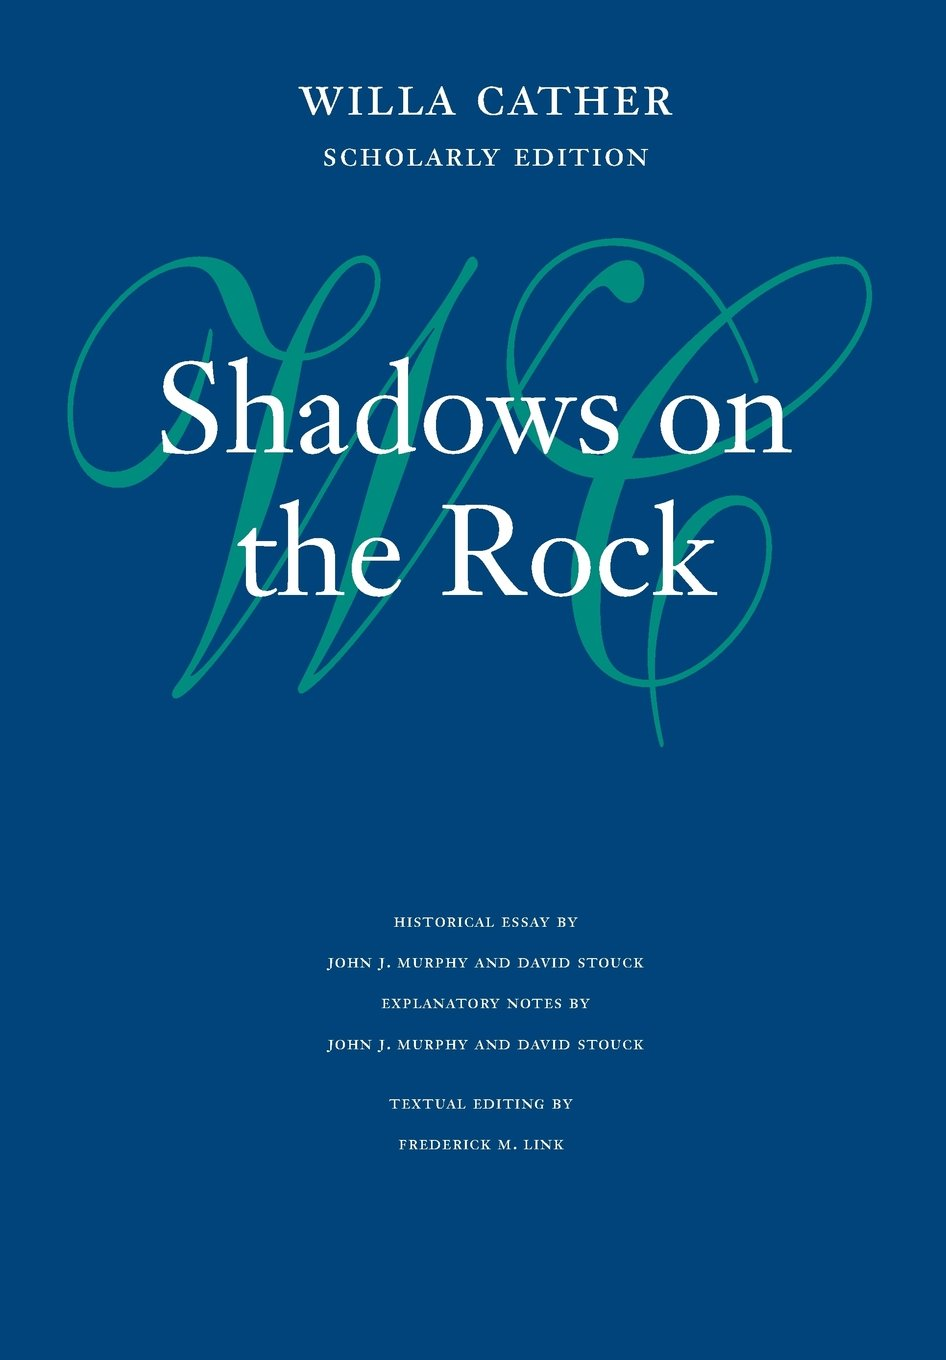 Shadows on the Rock (Willa Cather Scholarly Edition) ebook